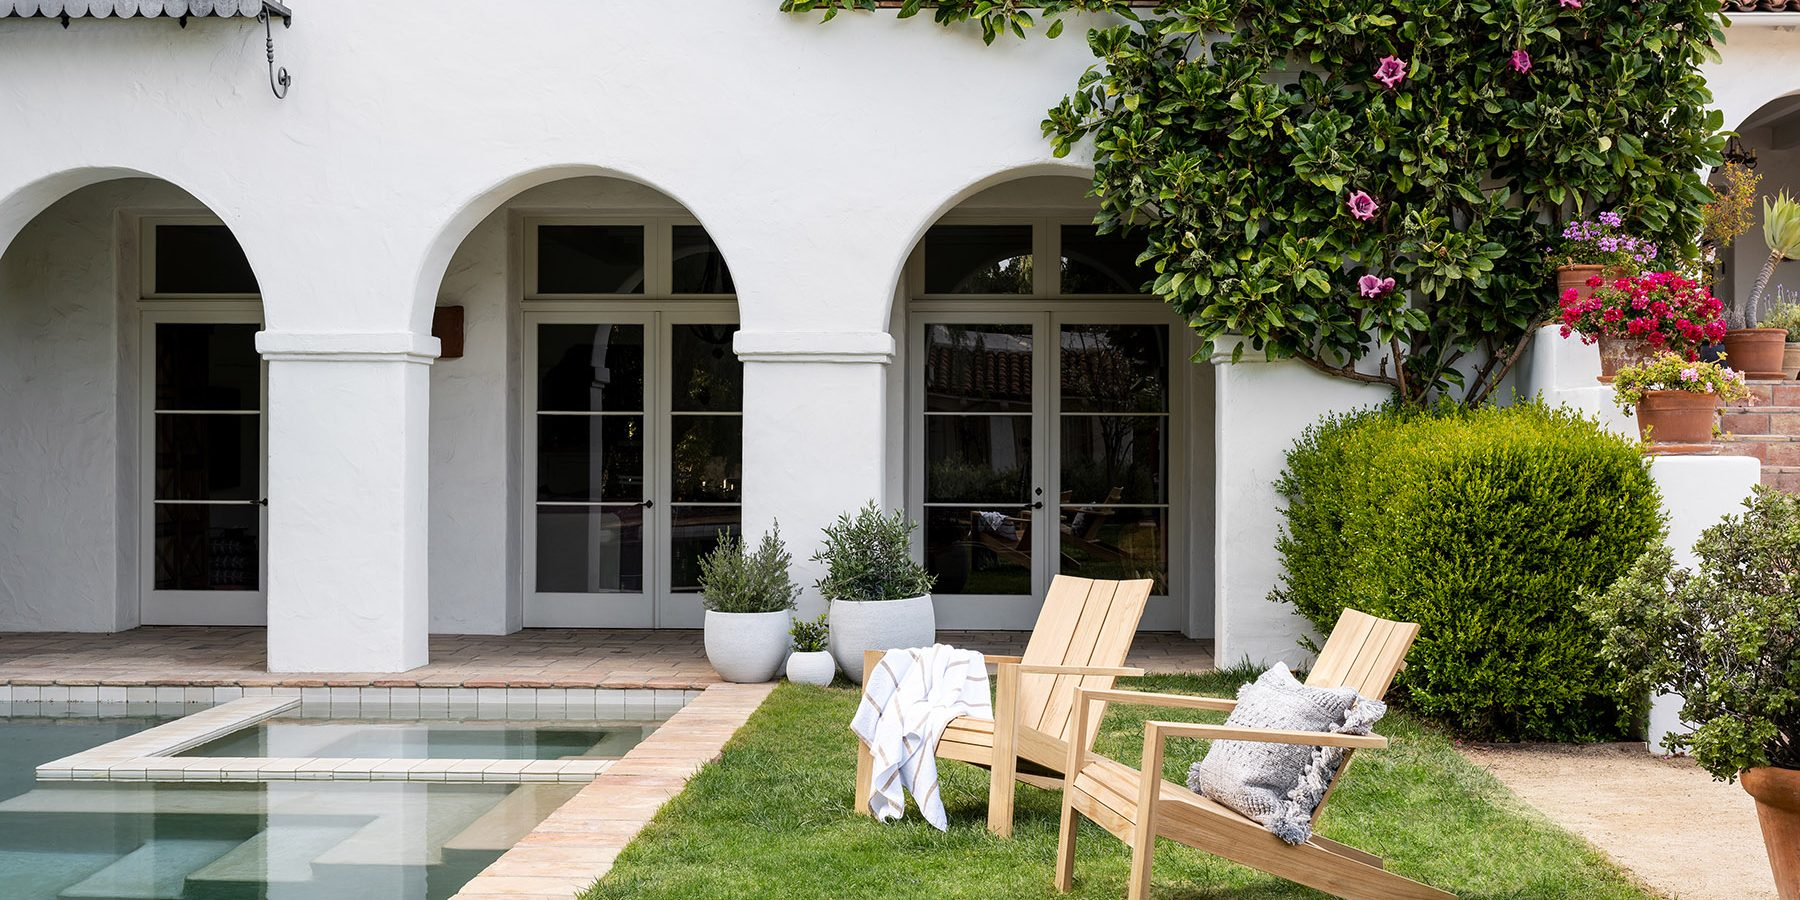 How to Clean & Care for Your Outdoor Furniture